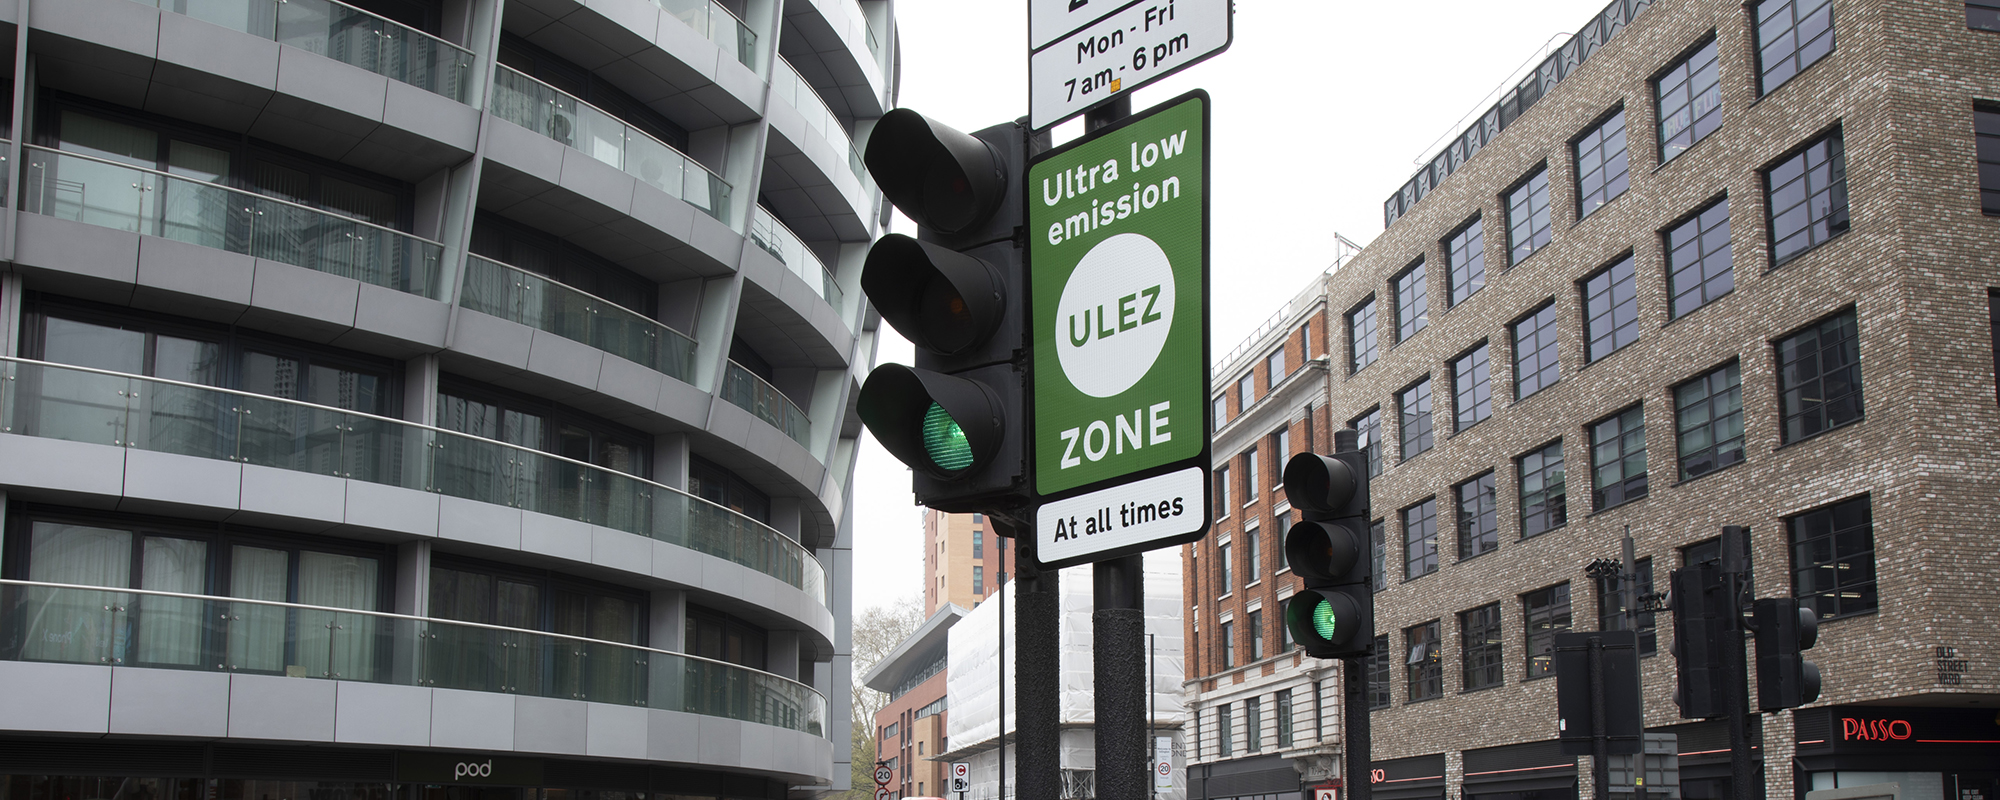 London's Ultra Low Emission Zone was introduced in April 2019